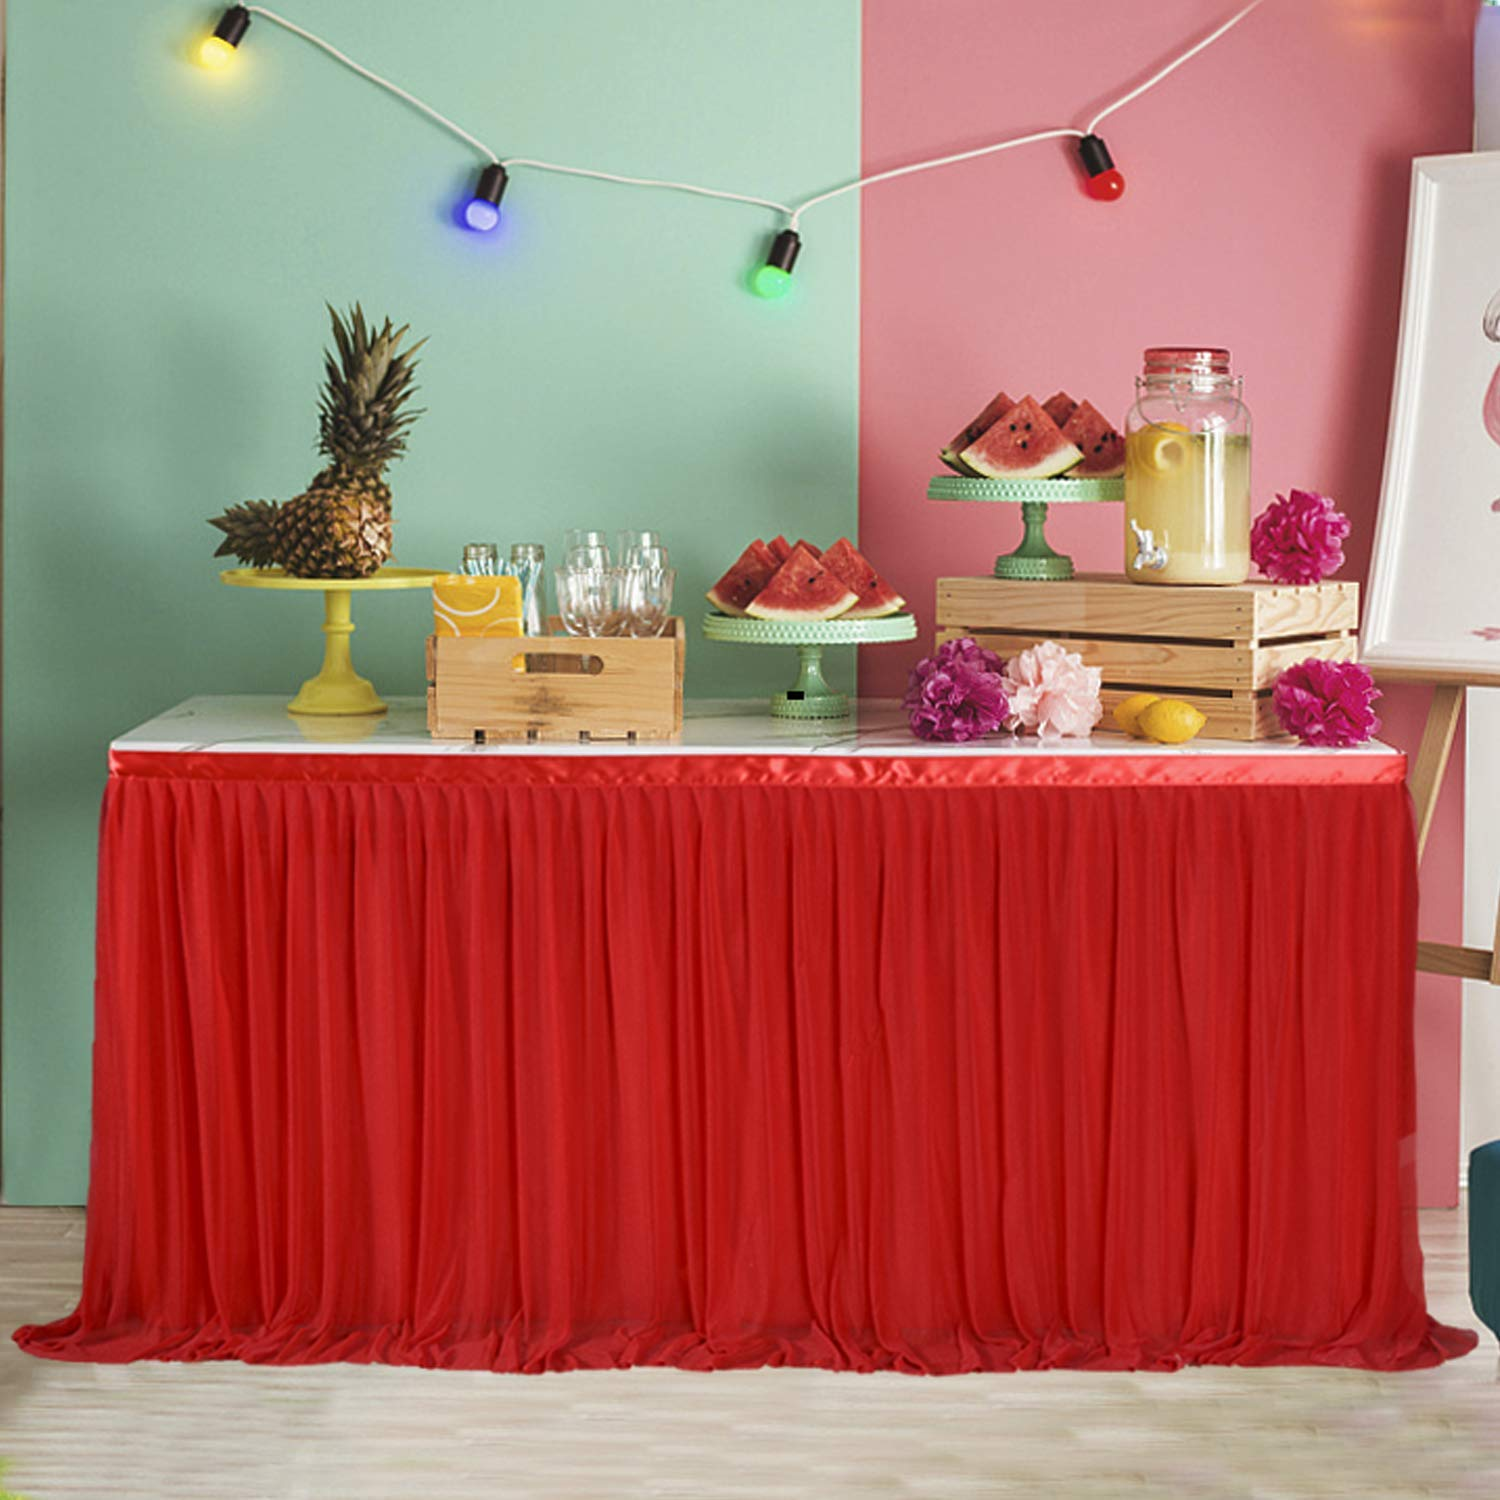 fd06b86a6 Get Quotations · Red Tulle Party Tabke Skirt 9FT Round or Rectangle  Tablecloth Tutu for Christmas Dinning Home and